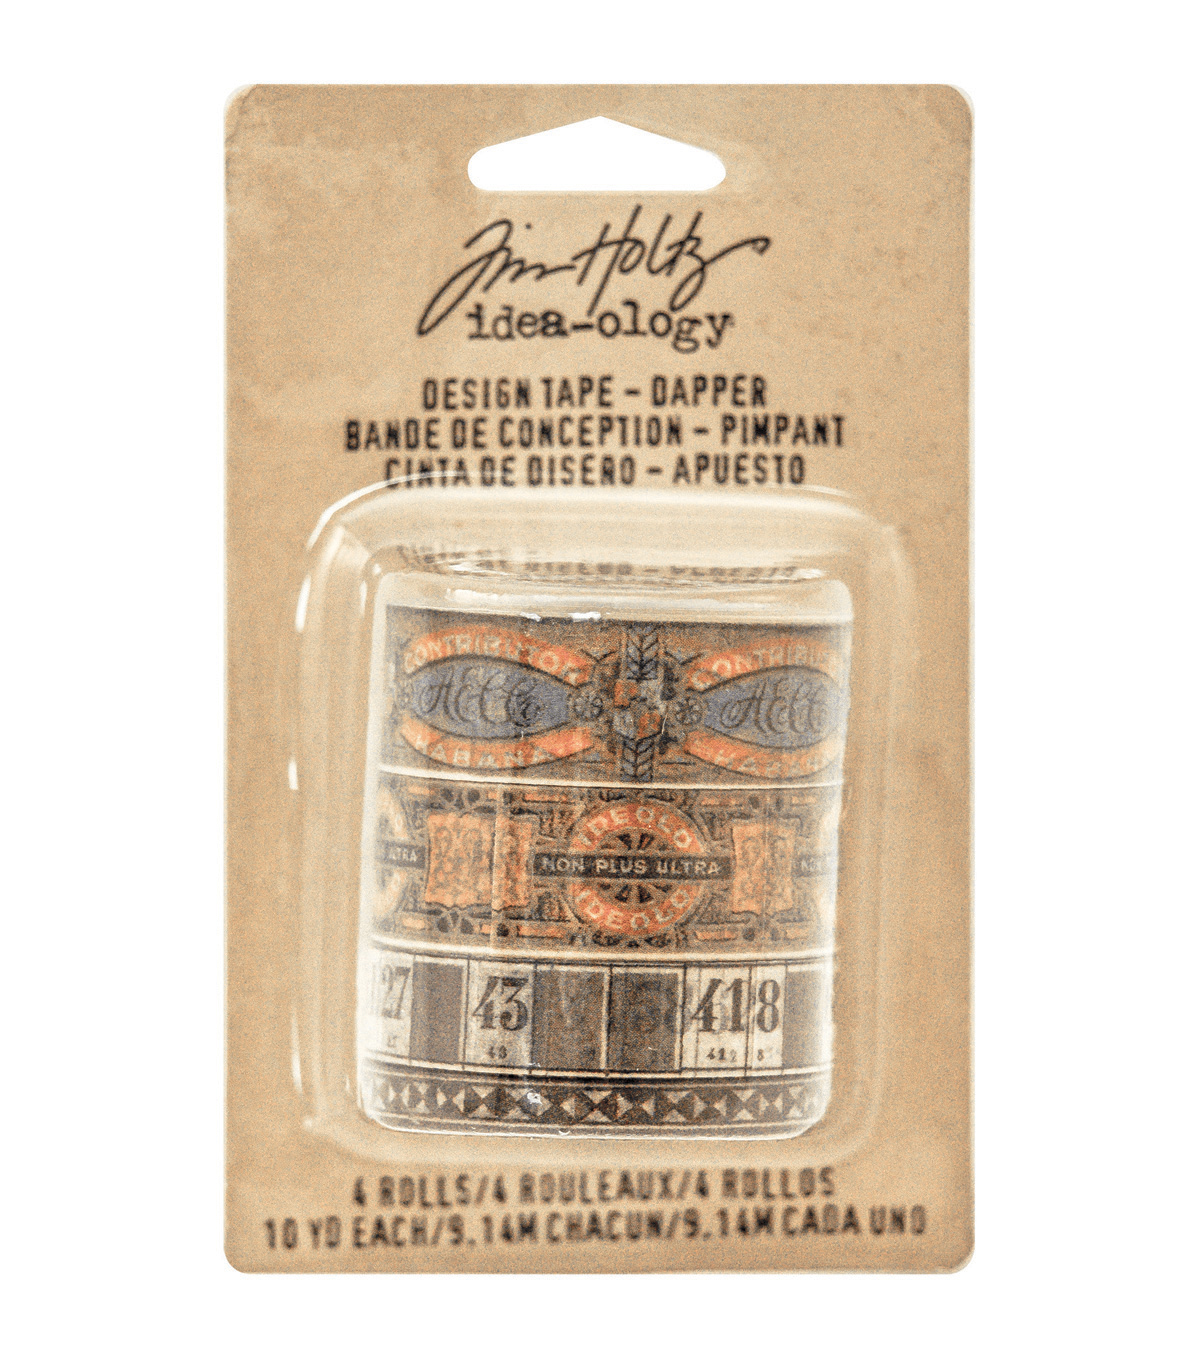 Tim Holtz Idea-Ology Design Tape 10yd 4/Pkg-Dapper